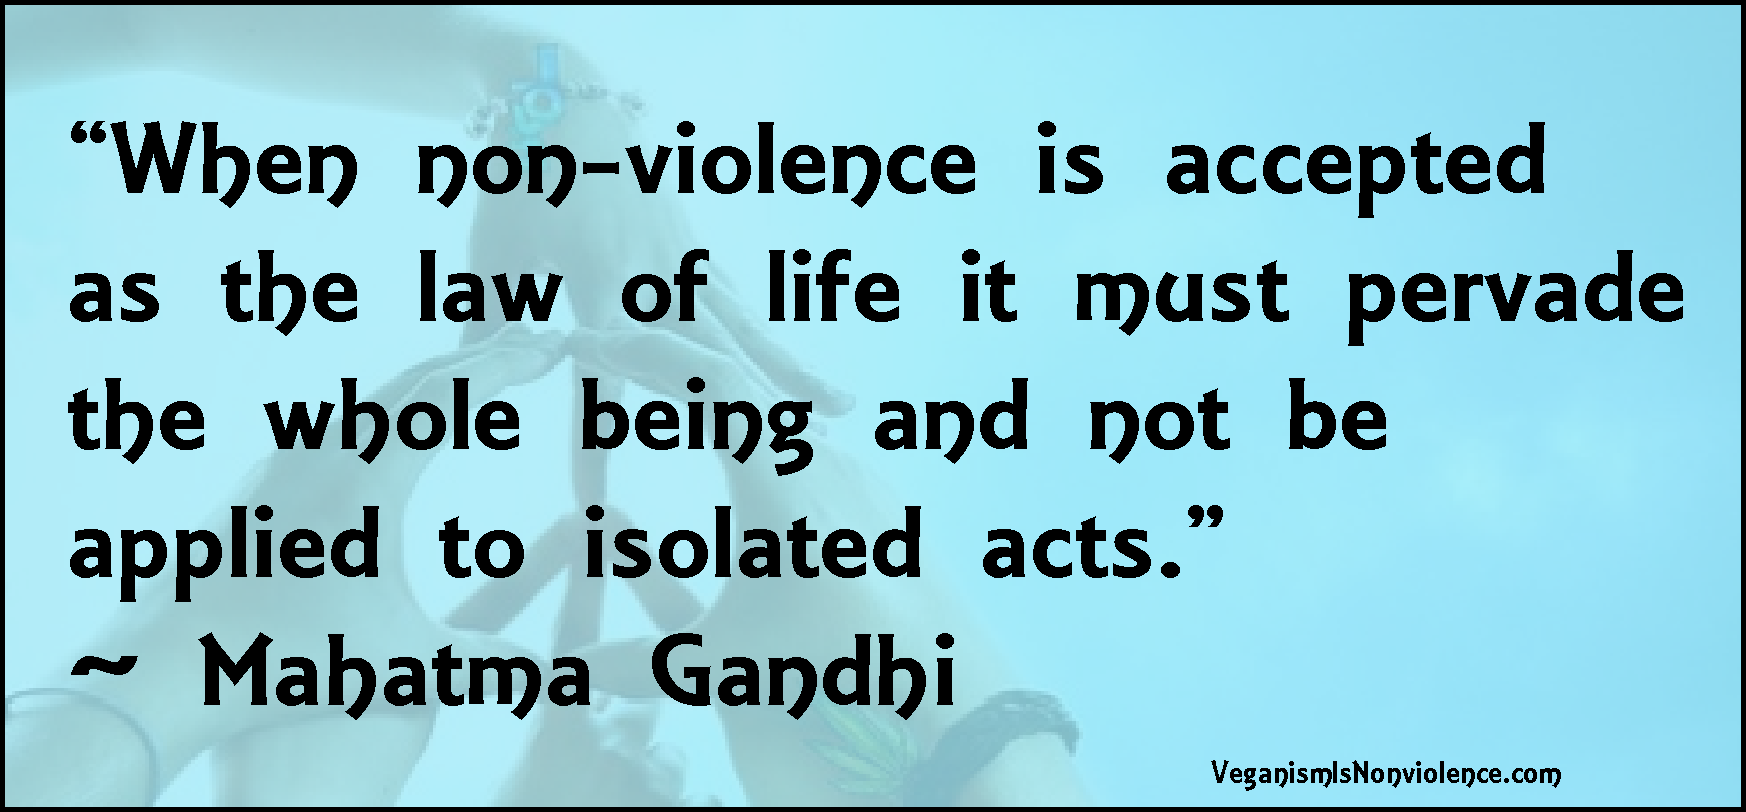 gandhi king and mandela what made non-violence work dbq essay Dbq project and gandhipdf what made non-violence work background essay non-violence dbq gandhi, king and mandela.